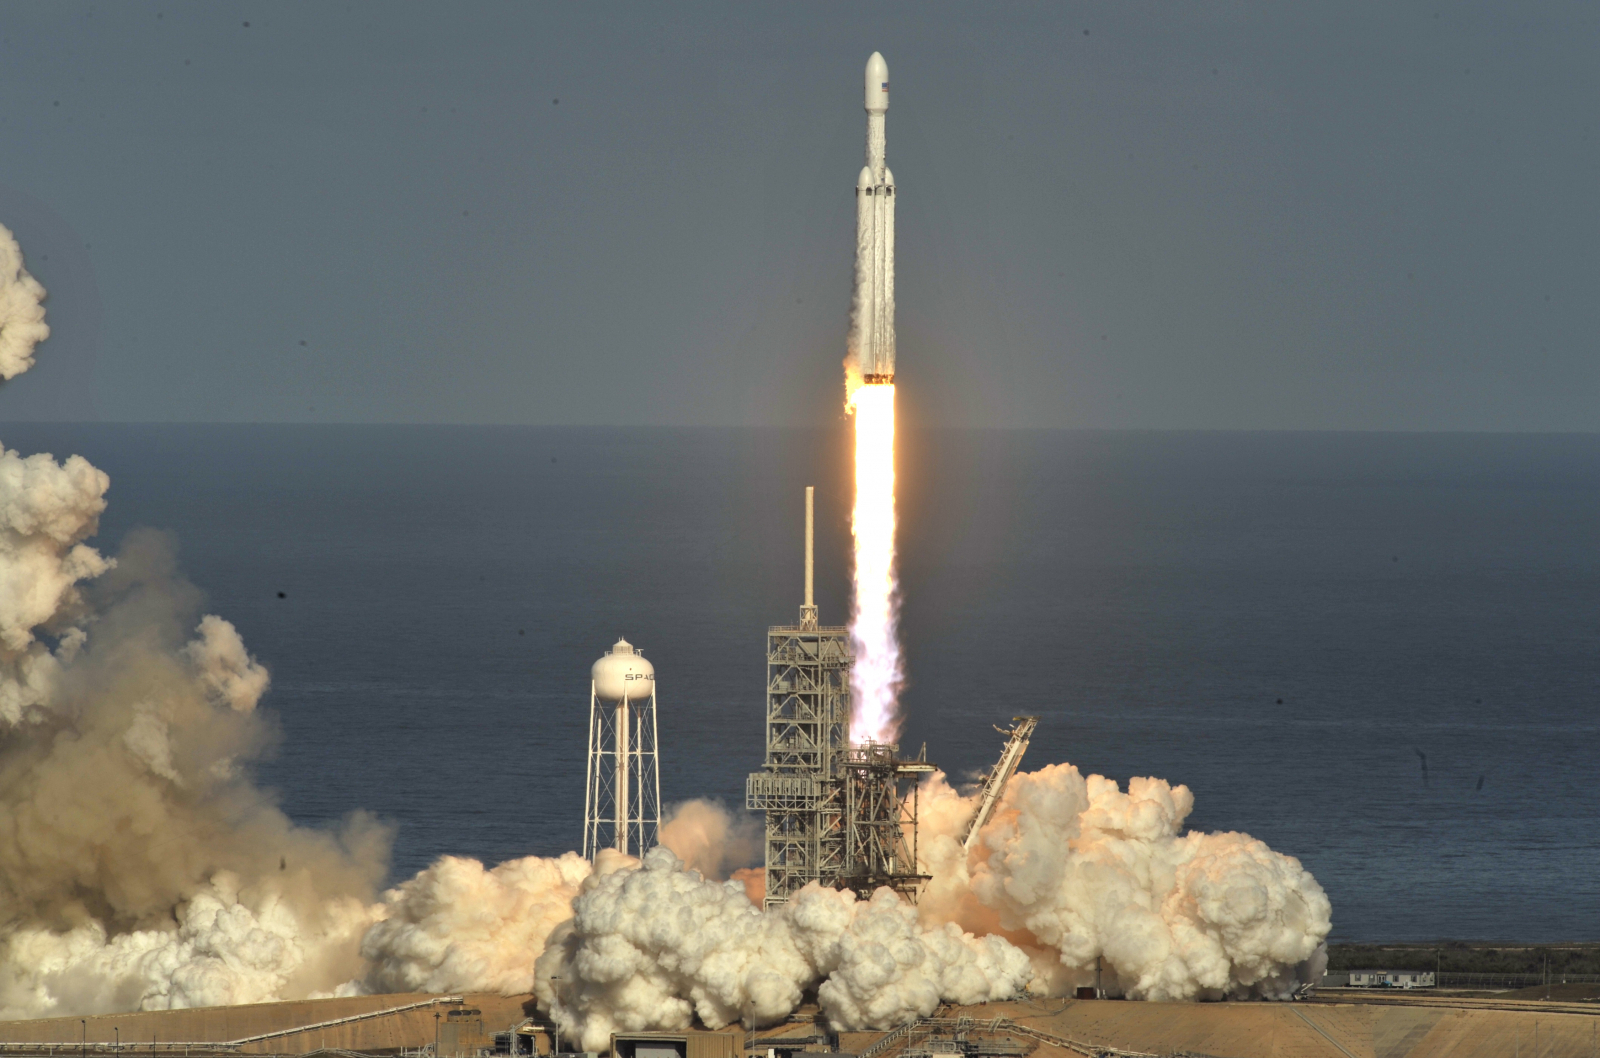 SpaceX To Transport Private Astronauts To ISS For Axiom Next Year